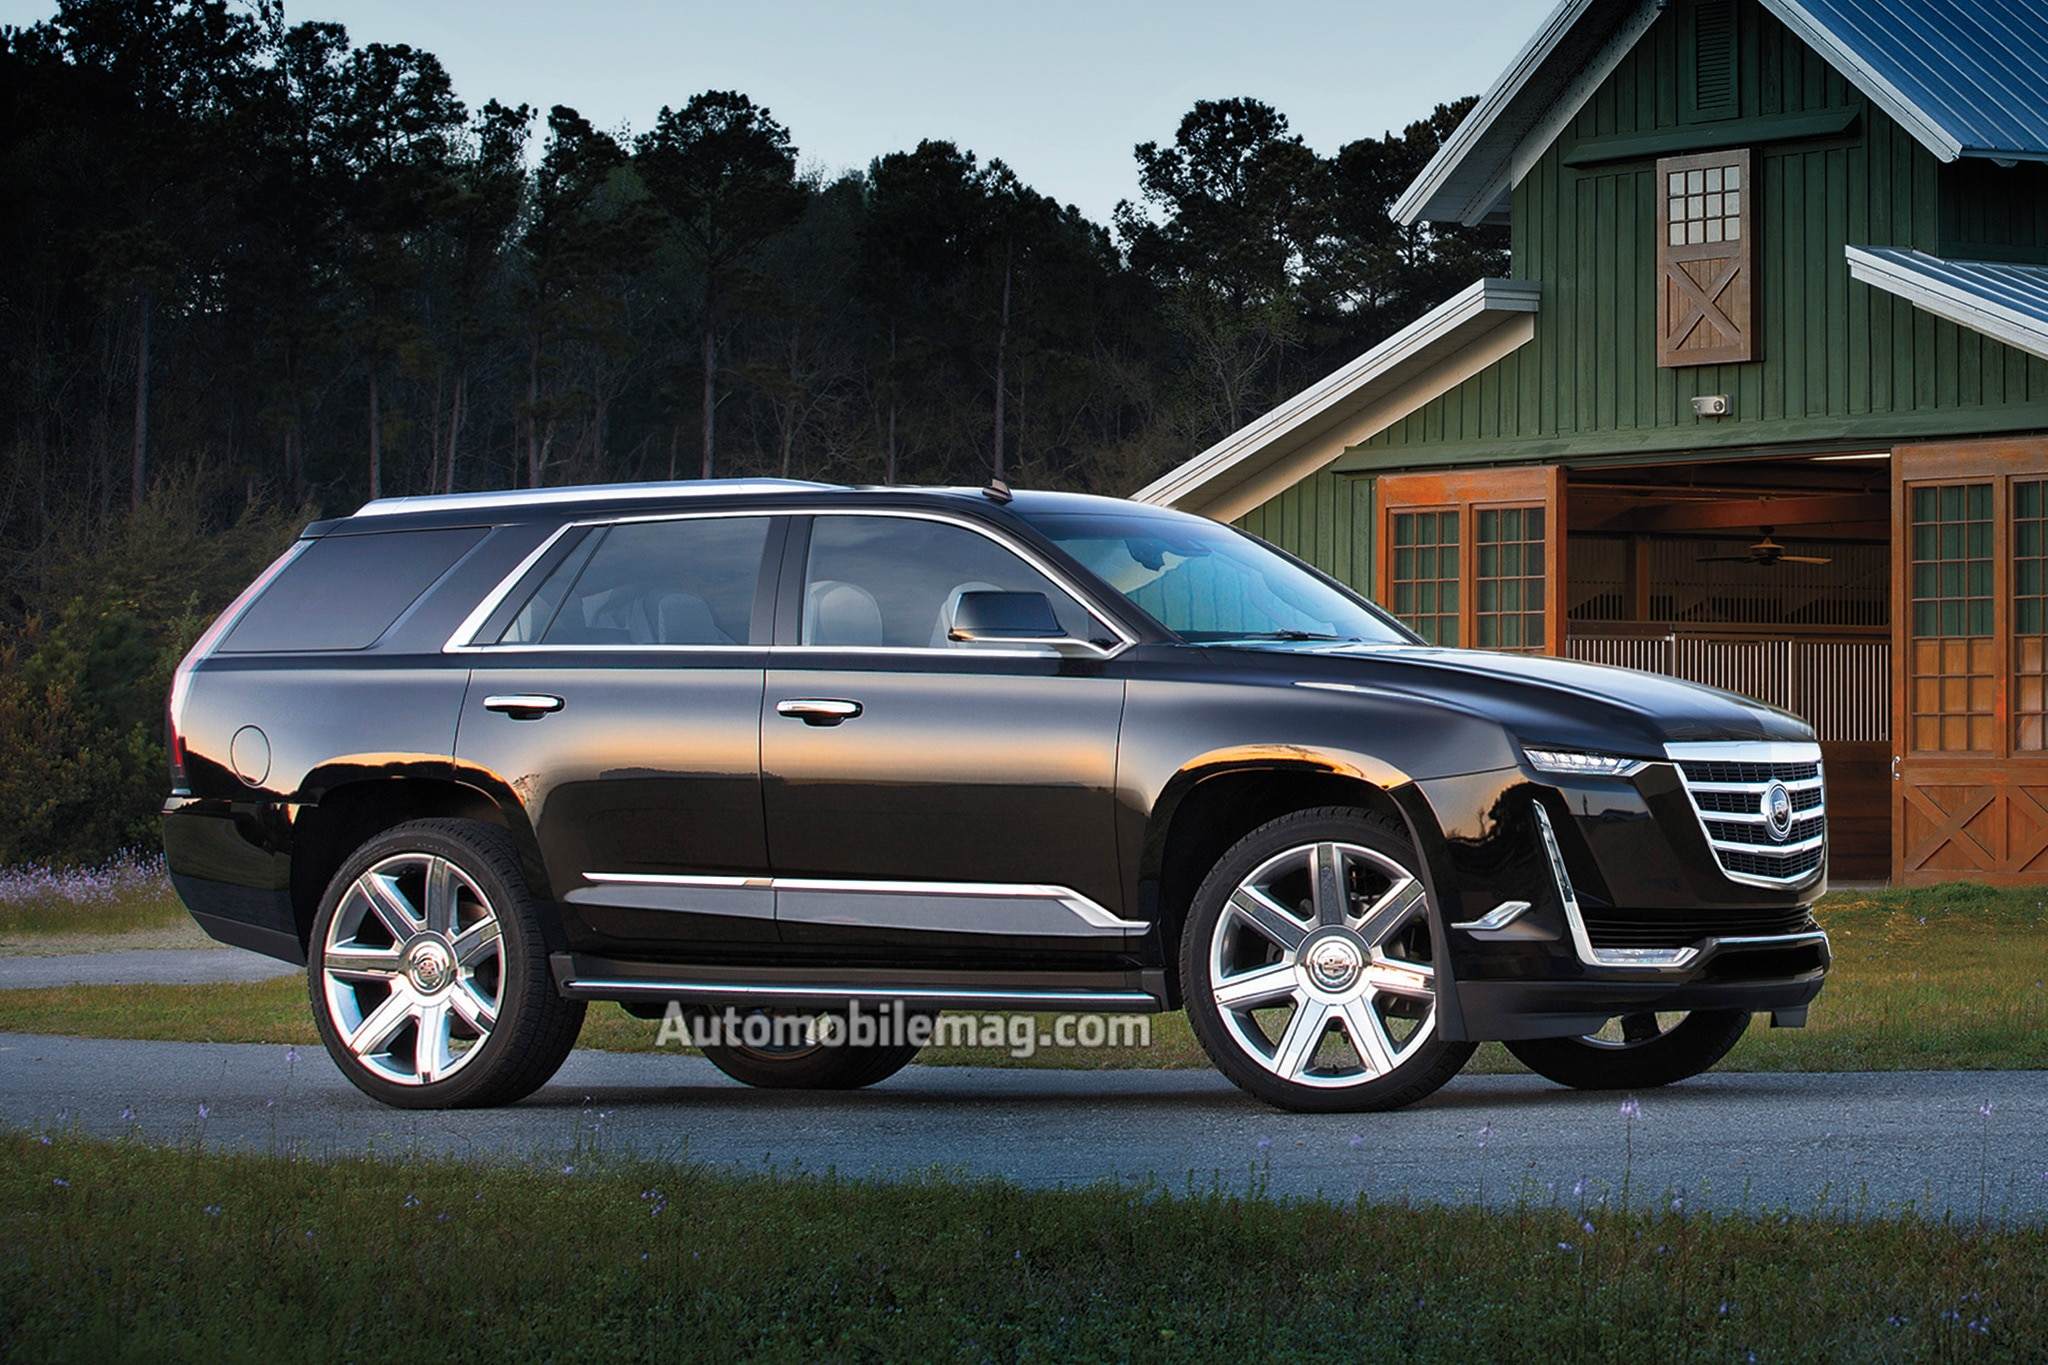 Cadillac Escalade Ext >> 2020 Cadillac Escalade and Escalade ESV: What to Expect | Automobile Magazine